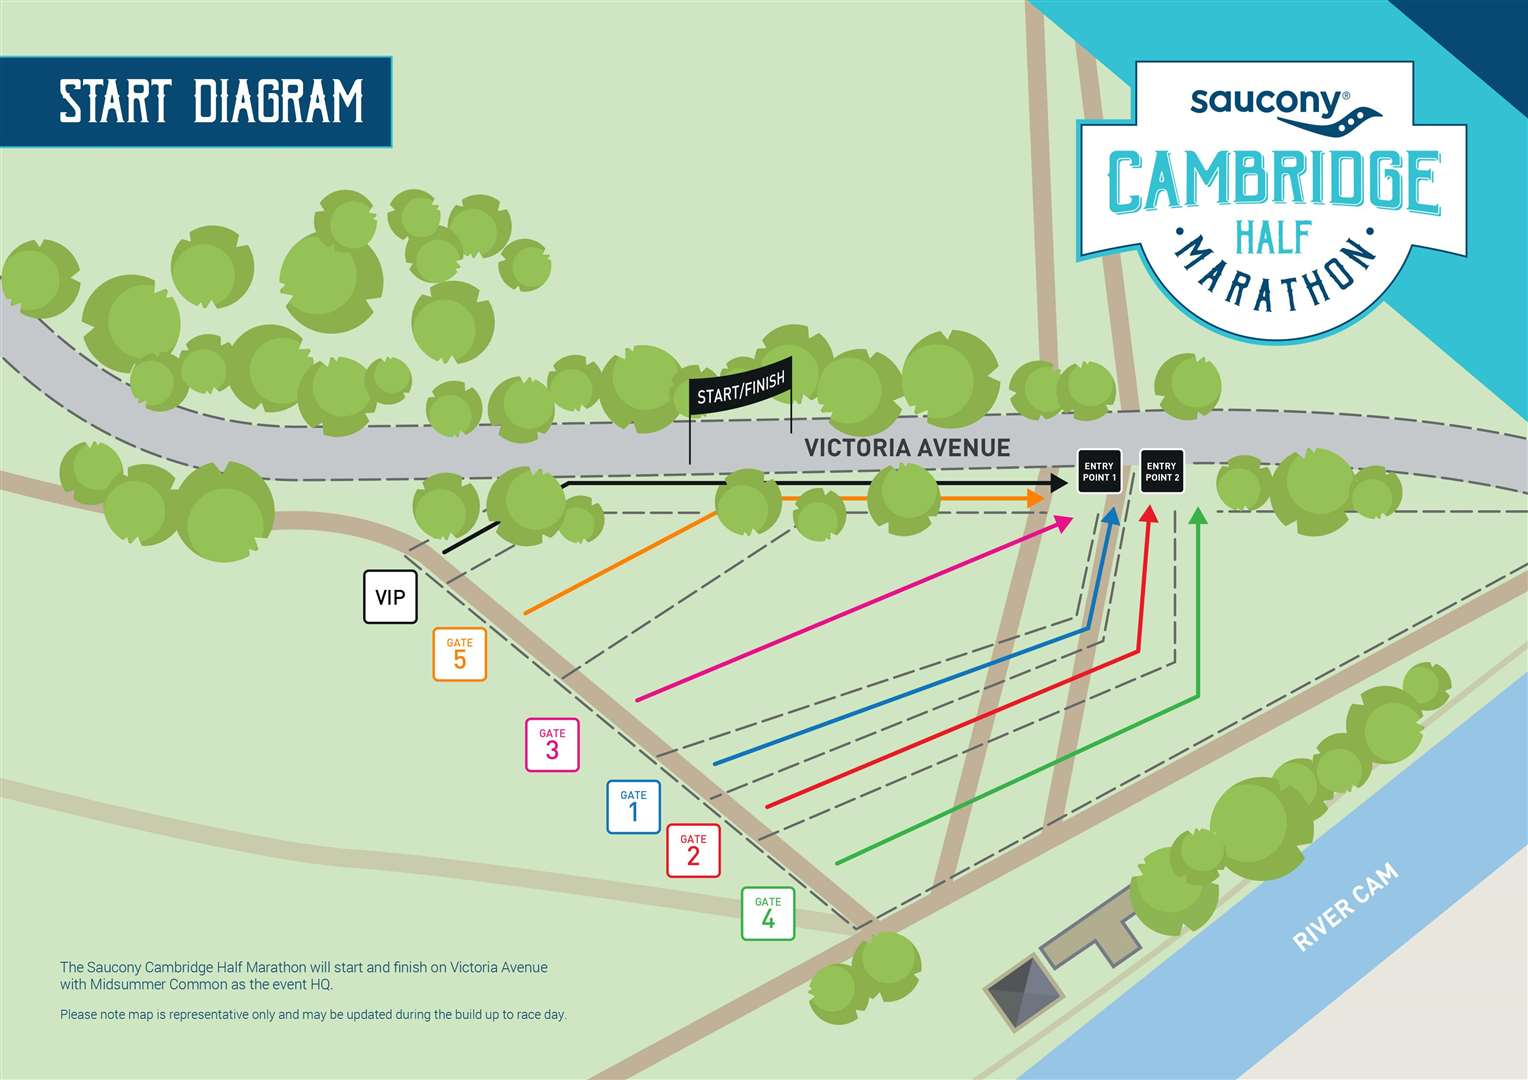 The site plan for the start of the 2019 Saucony Cambridge Half Marathon (7523887)